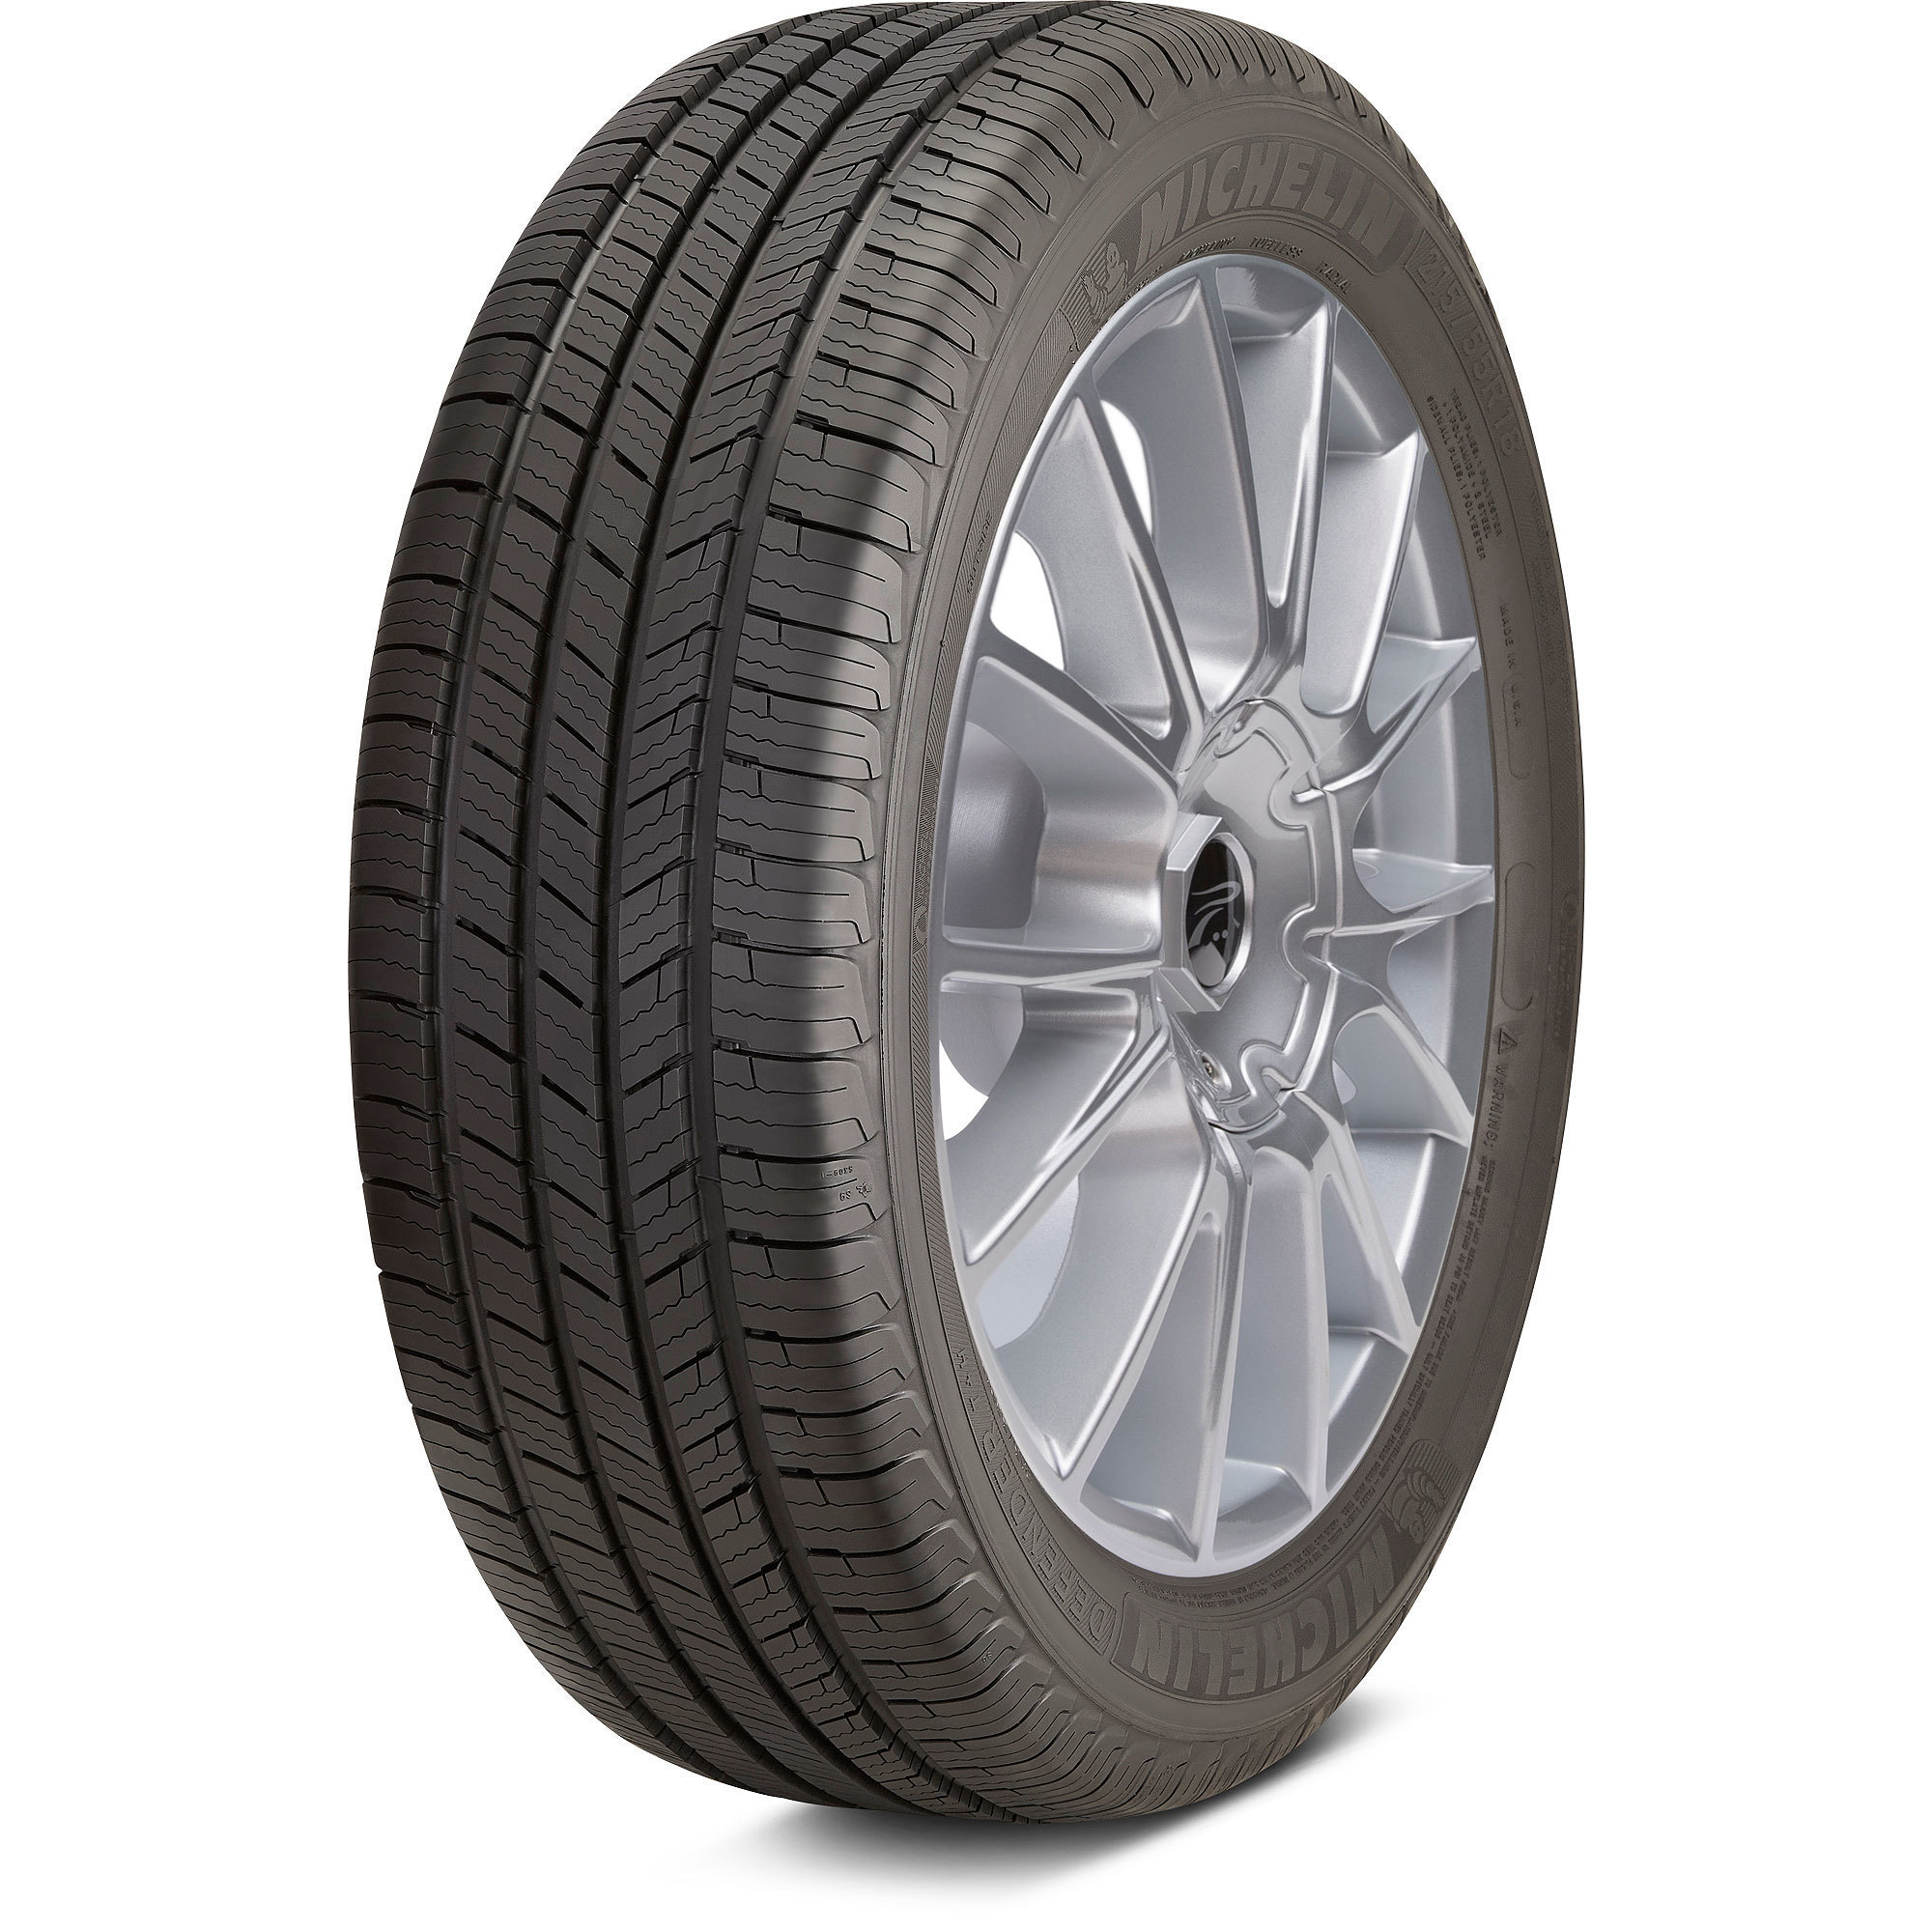 How Much Does A New Set Of Tires Cost Tirebuyer Tirebuyer Com